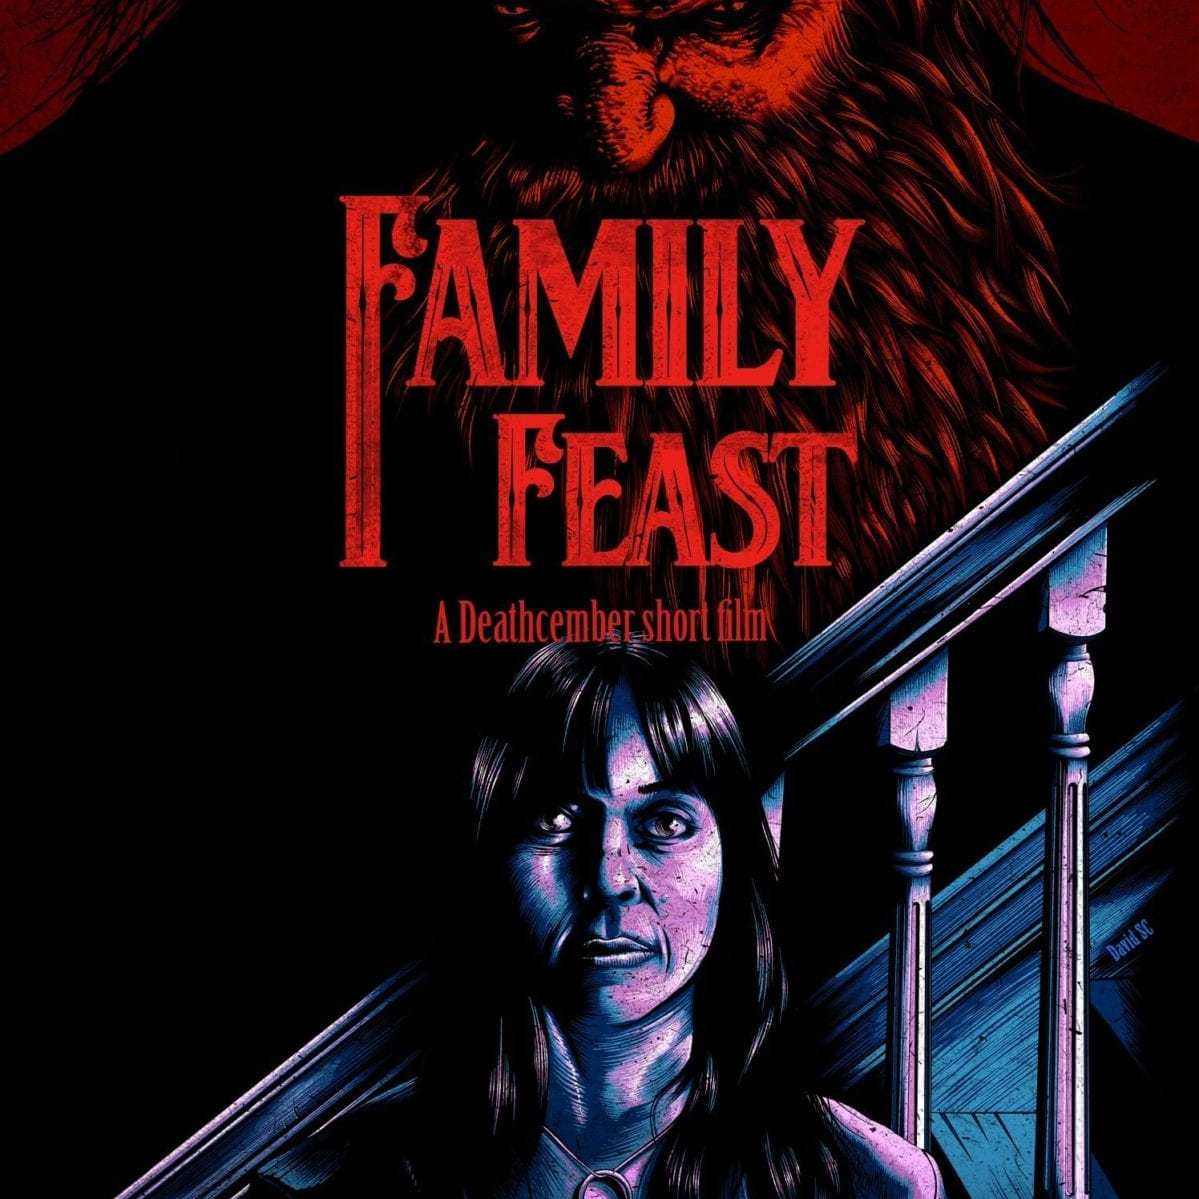 Family Feat poster Christmas horror stories, Deathcember premieres January 2020